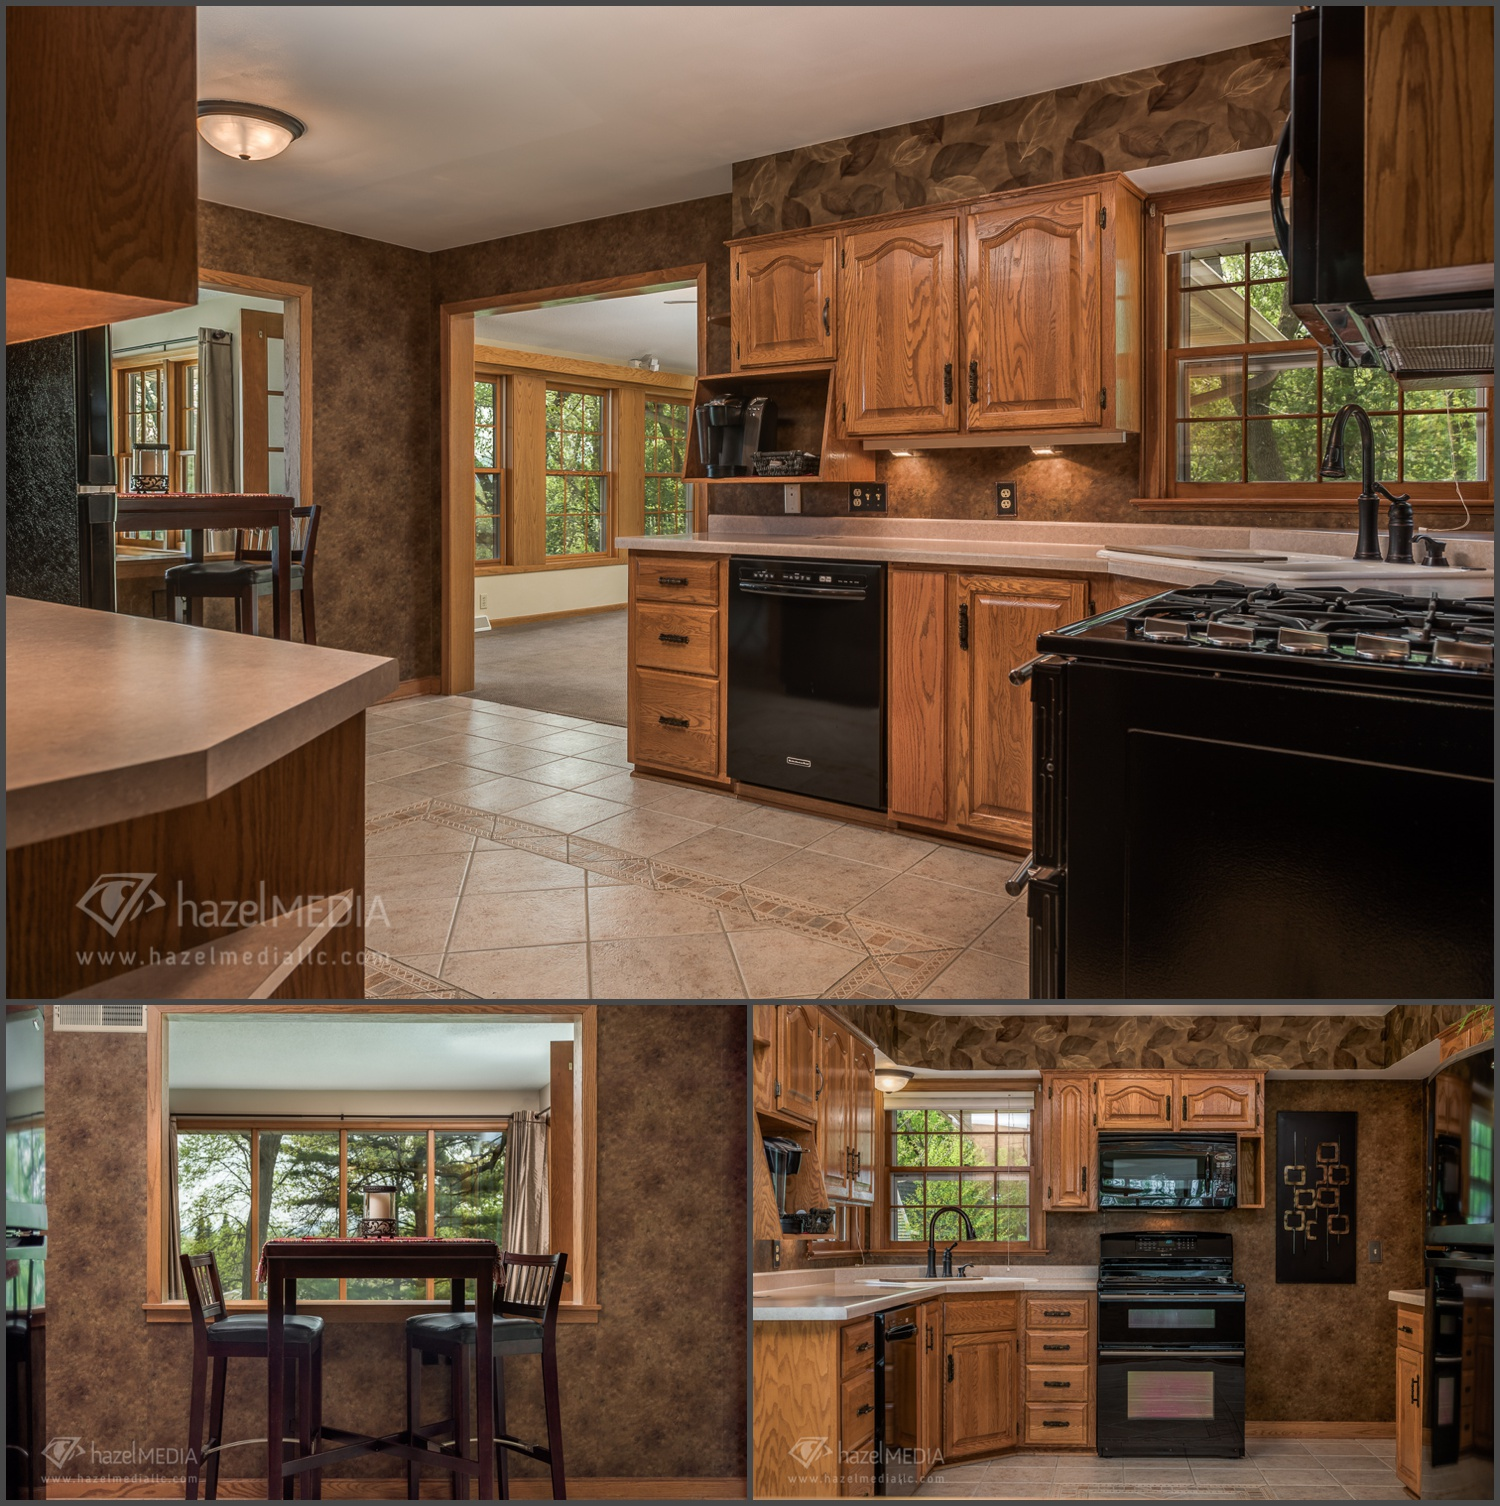 Prodigy Property Management Llc Posts: Sprawling Ranch Home {La Crescent MN}